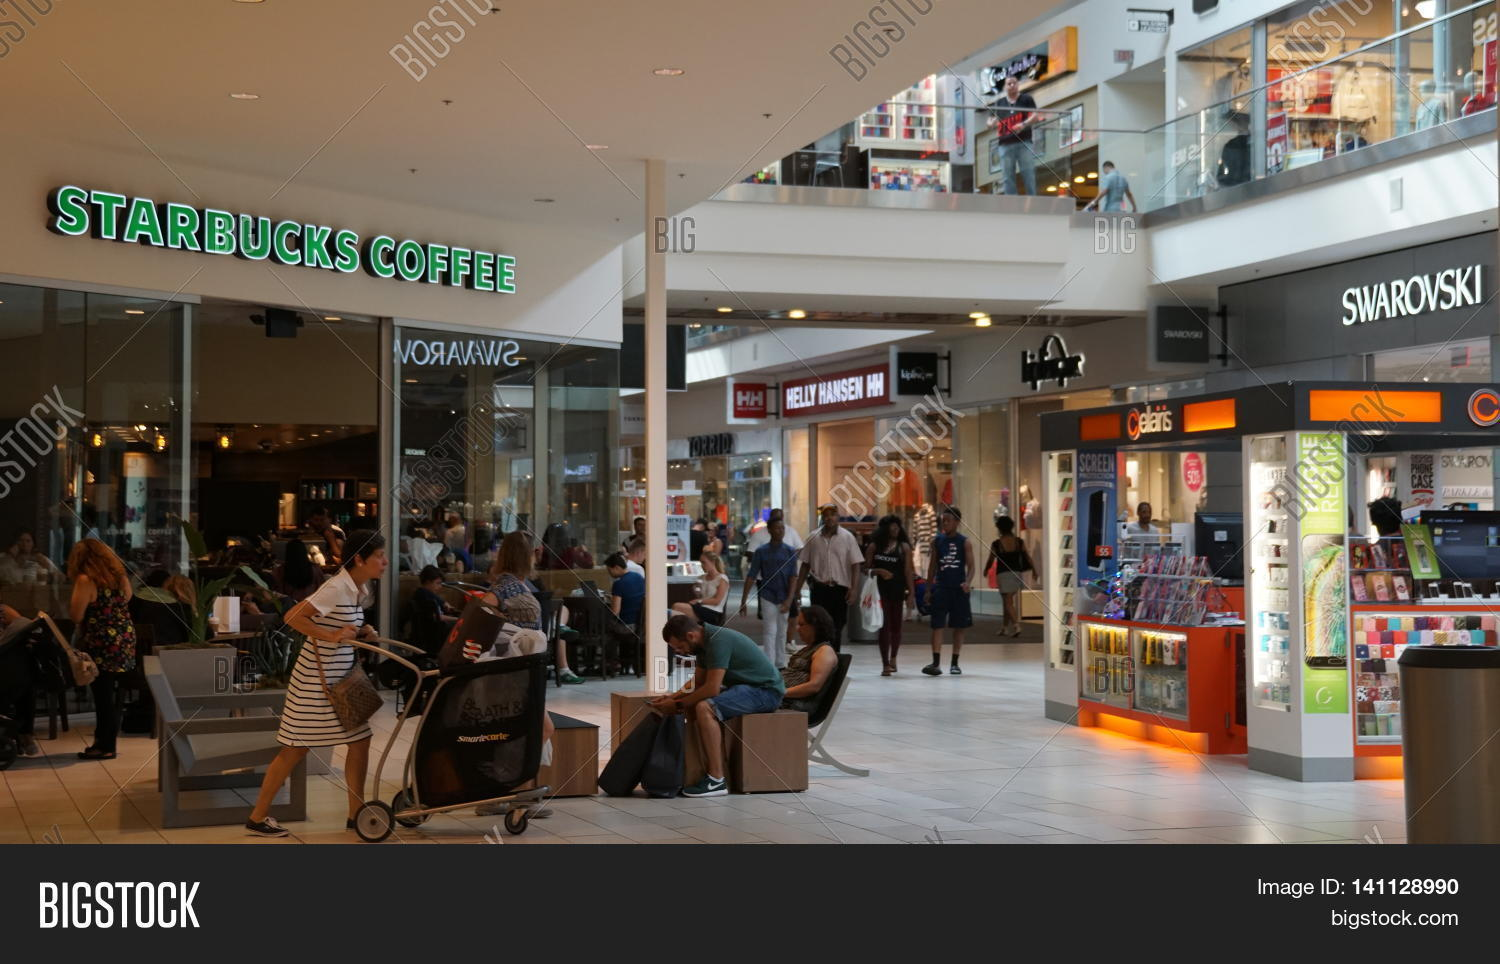 Outlet Mall Address. The Mills at Jersey Gardens Kapkowski Road Elizabeth, New Jersey Phone: () Directions to the Outlet Mall. The Mills at Jersey Gardens is located at Exit 13A of the New Jersey Turnpike.